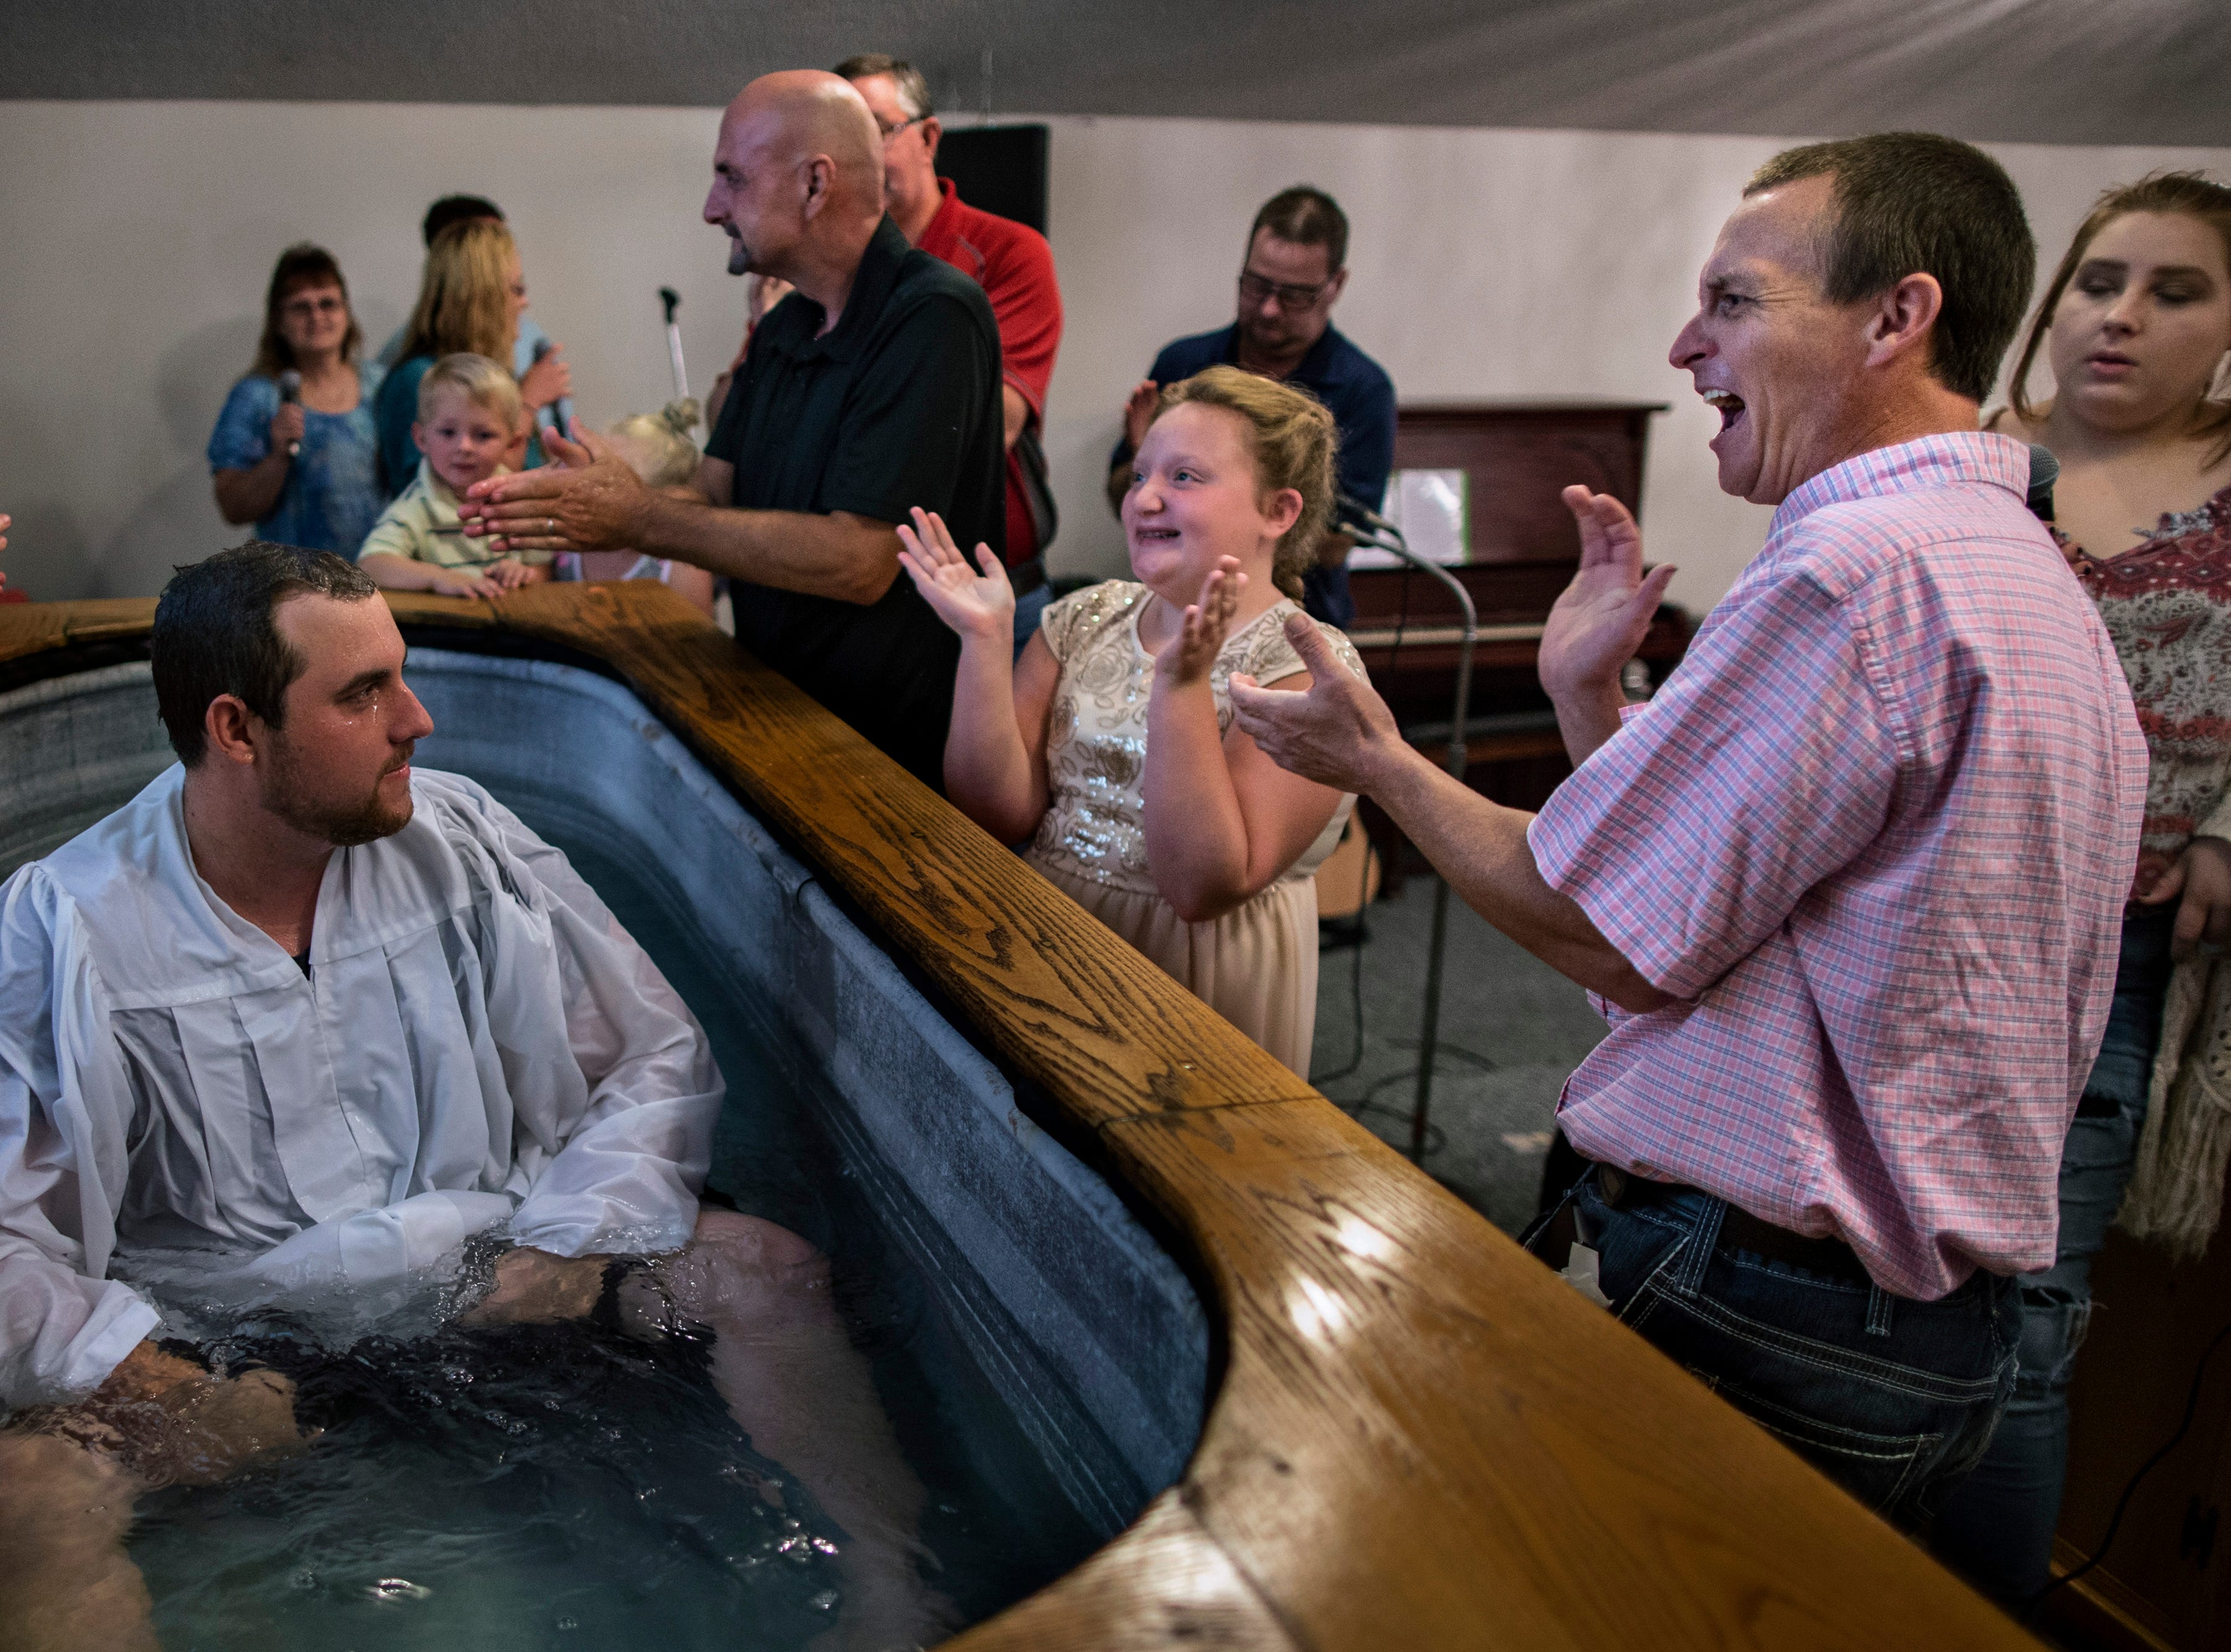 "Tyler Roberts, left, looks on as former addict and pastor of the Church of the New Covenant, Jacob Howell, reacts to his baptism. ""It's a holy experience to be a part of someone's renewal and starting a new life,"" Howell said. Howell used drugs in Austin's northside for years before he found himself homeless, without a job, and his family broken apart.  Now, he aims to be a beacon for others as he reclaims his life and preaches hopeAug. 12, 2018"